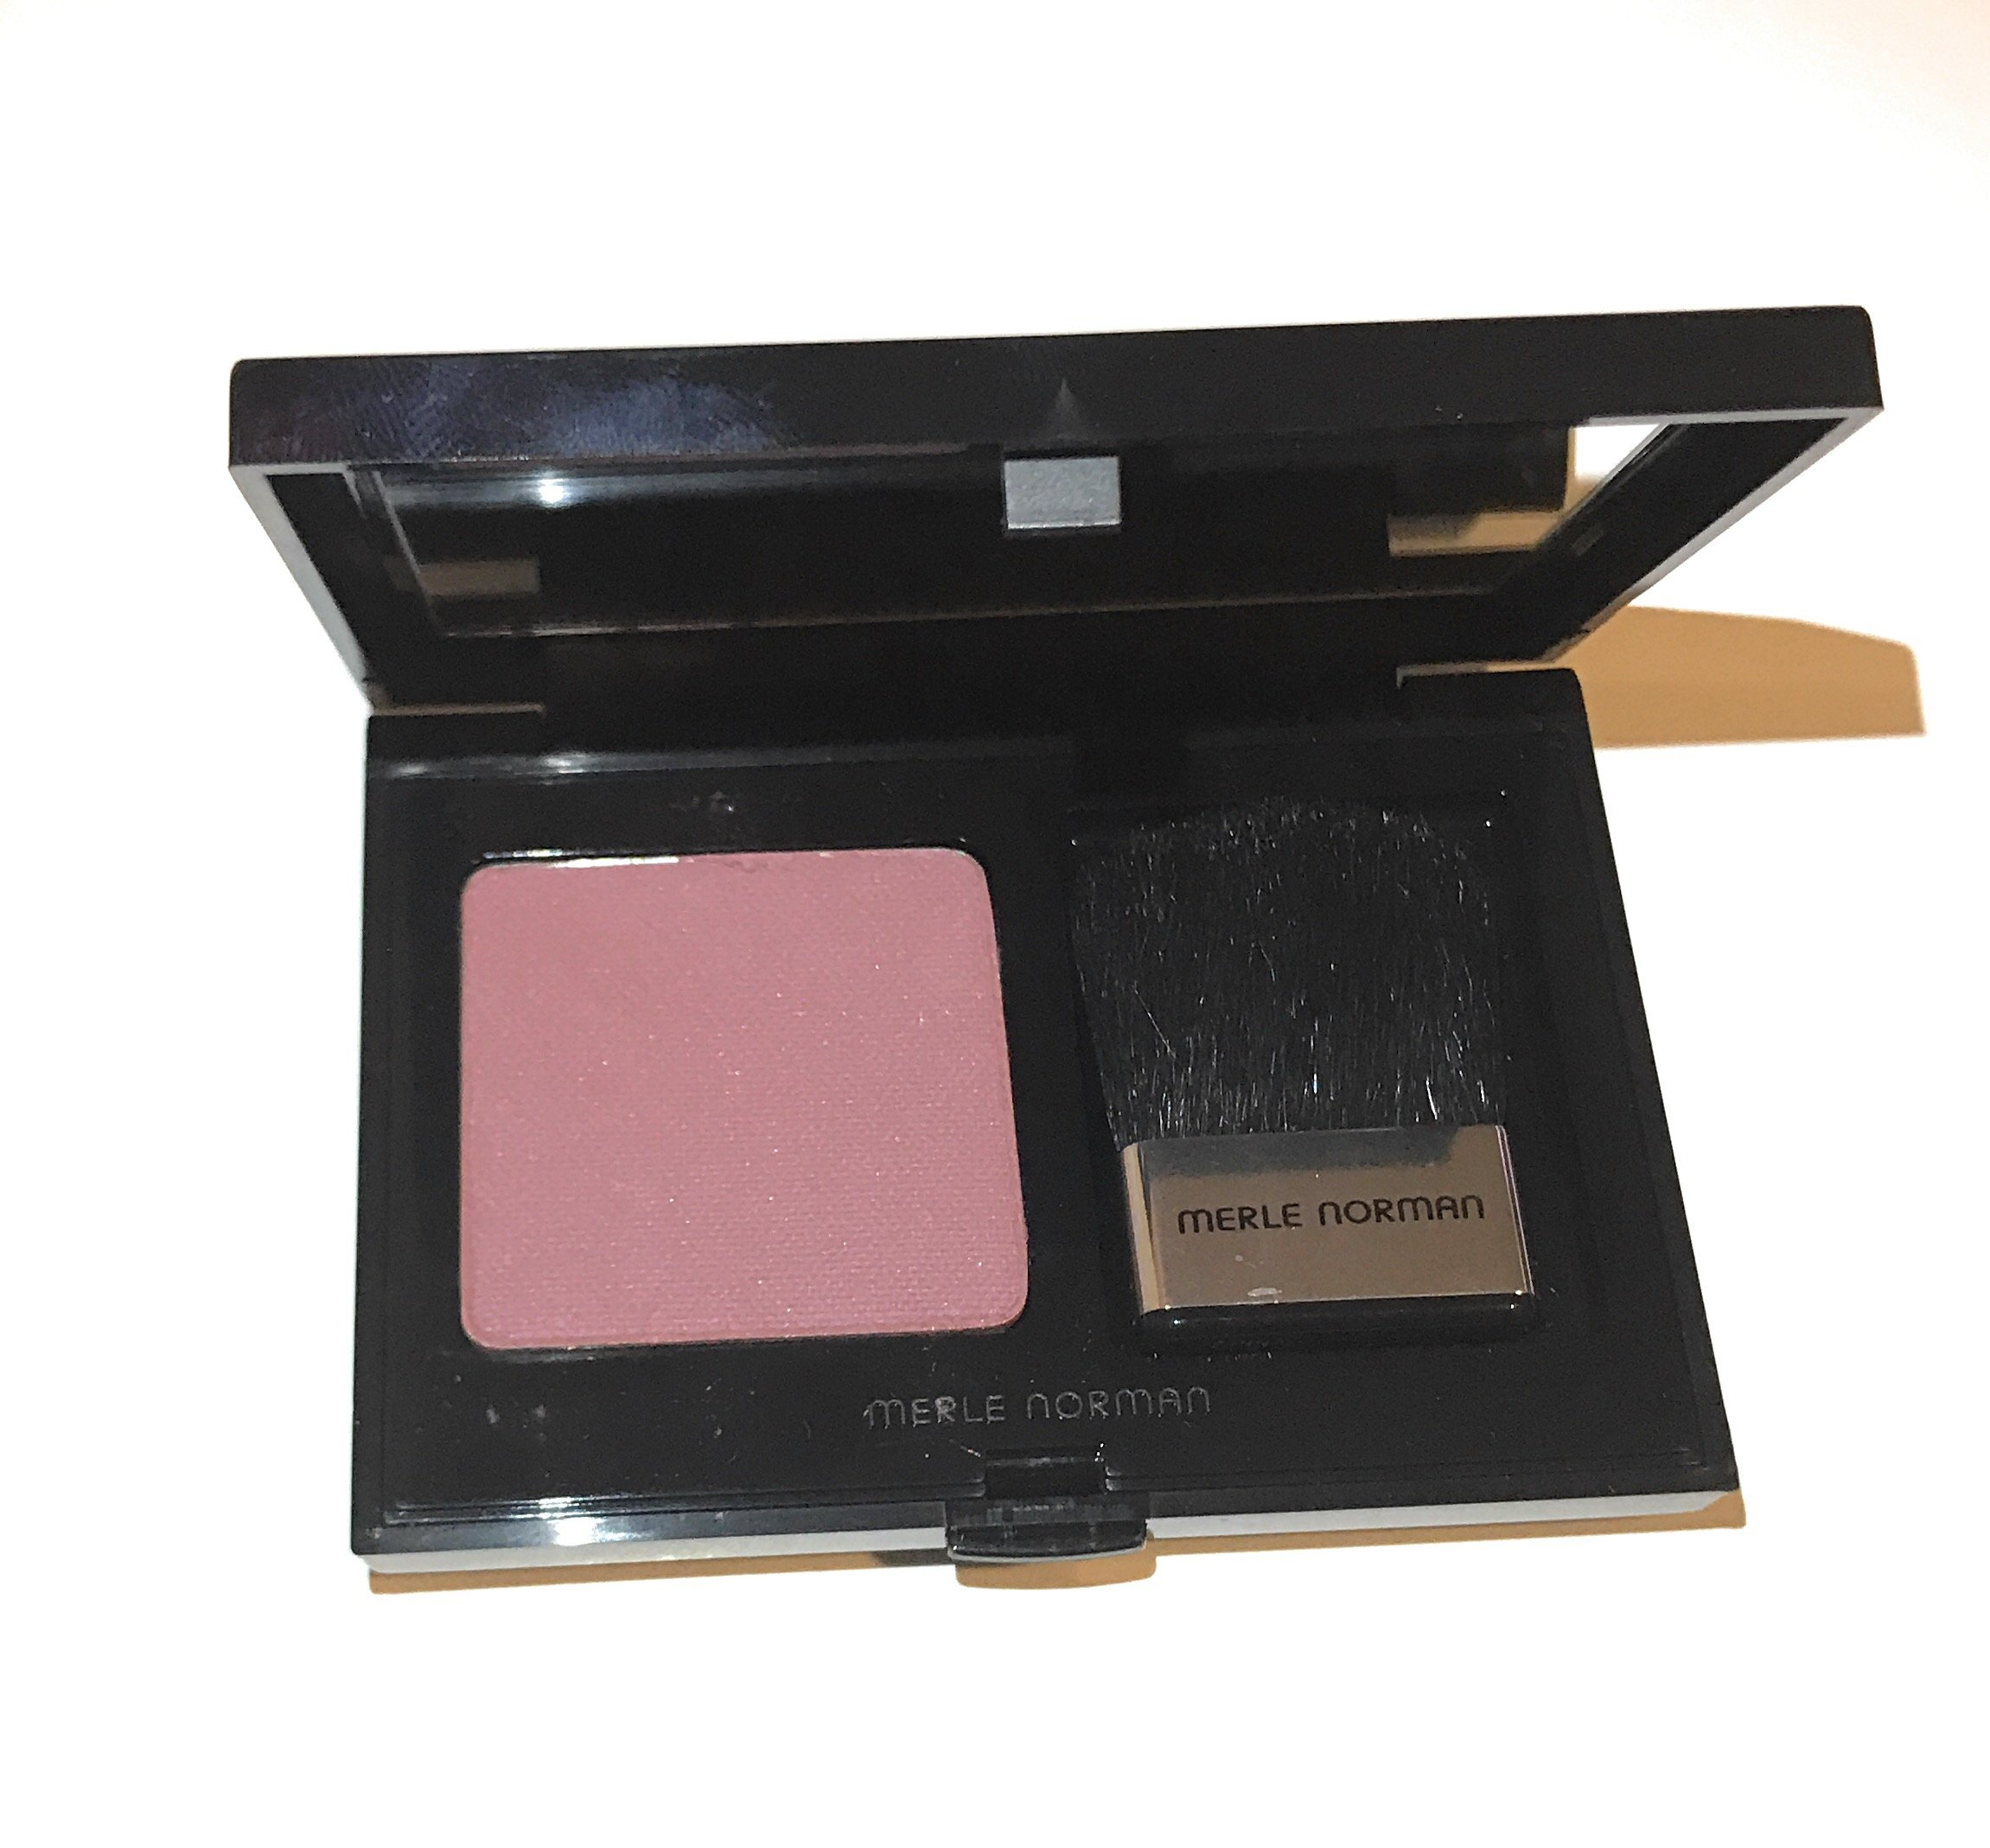 Merle Norman - Purely Mineral Cheeks Blush - Come Heather